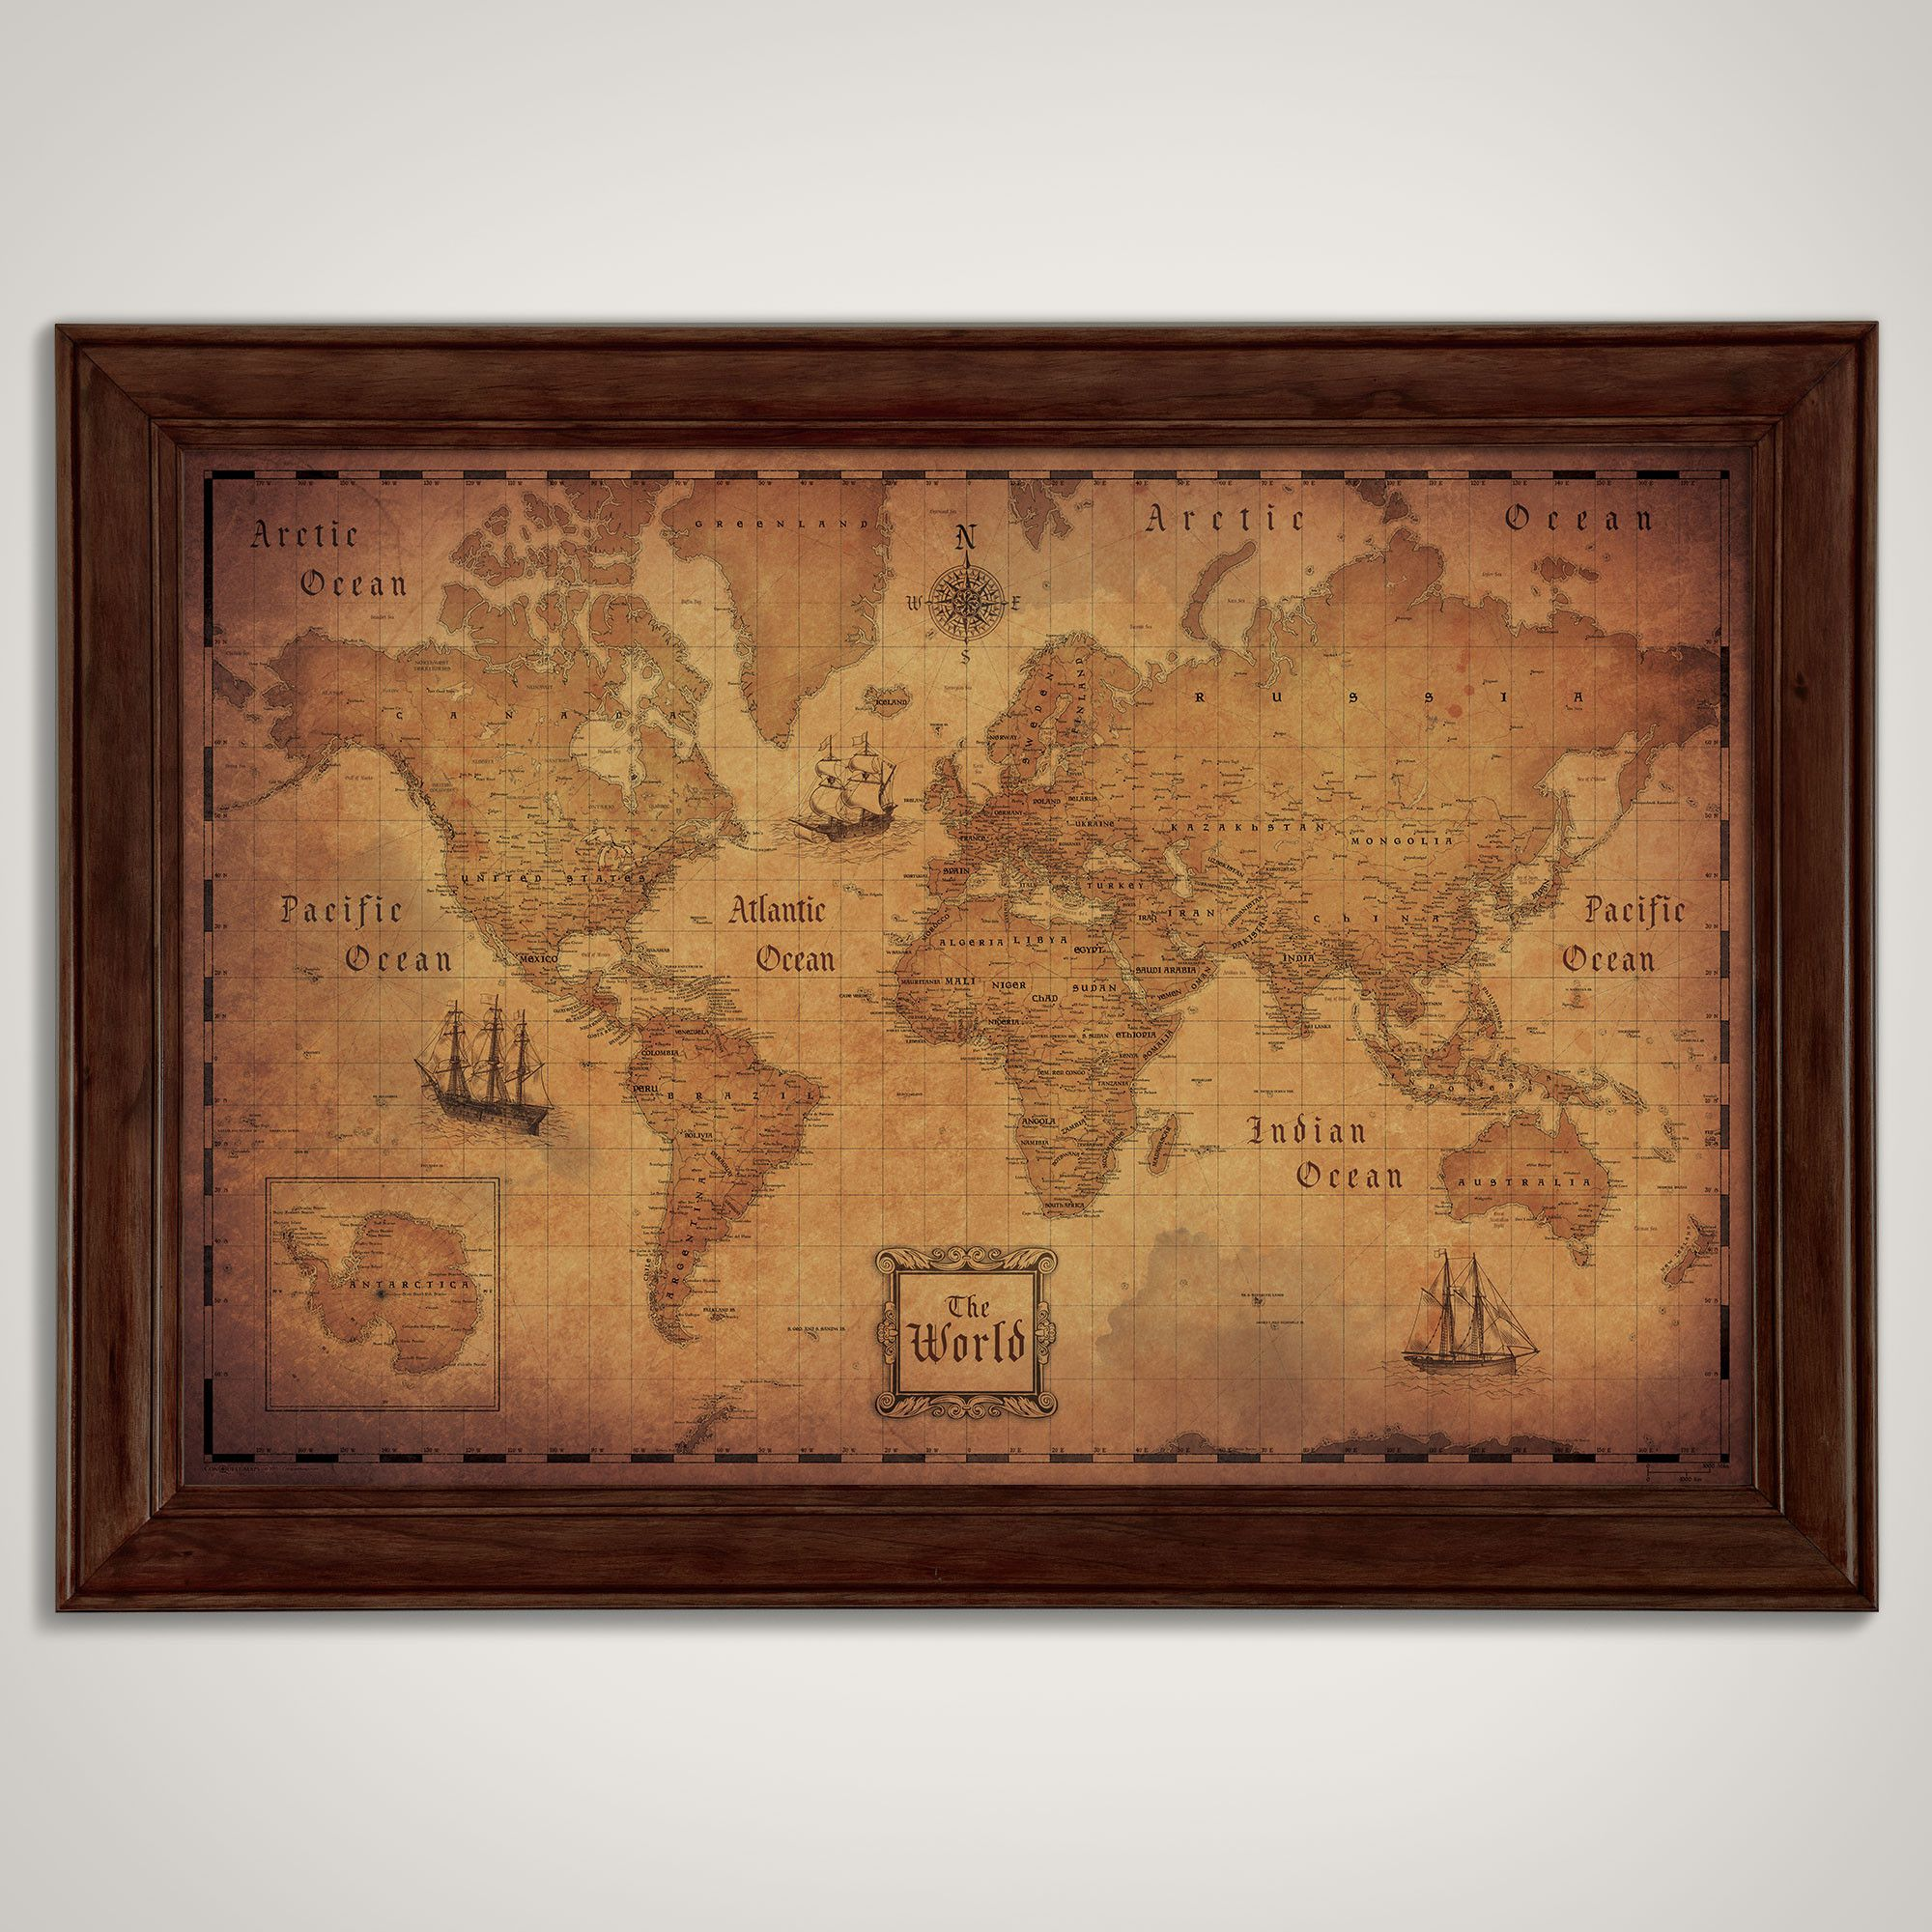 World map poster golden aged golden age and products world map poster golden aged gumiabroncs Image collections